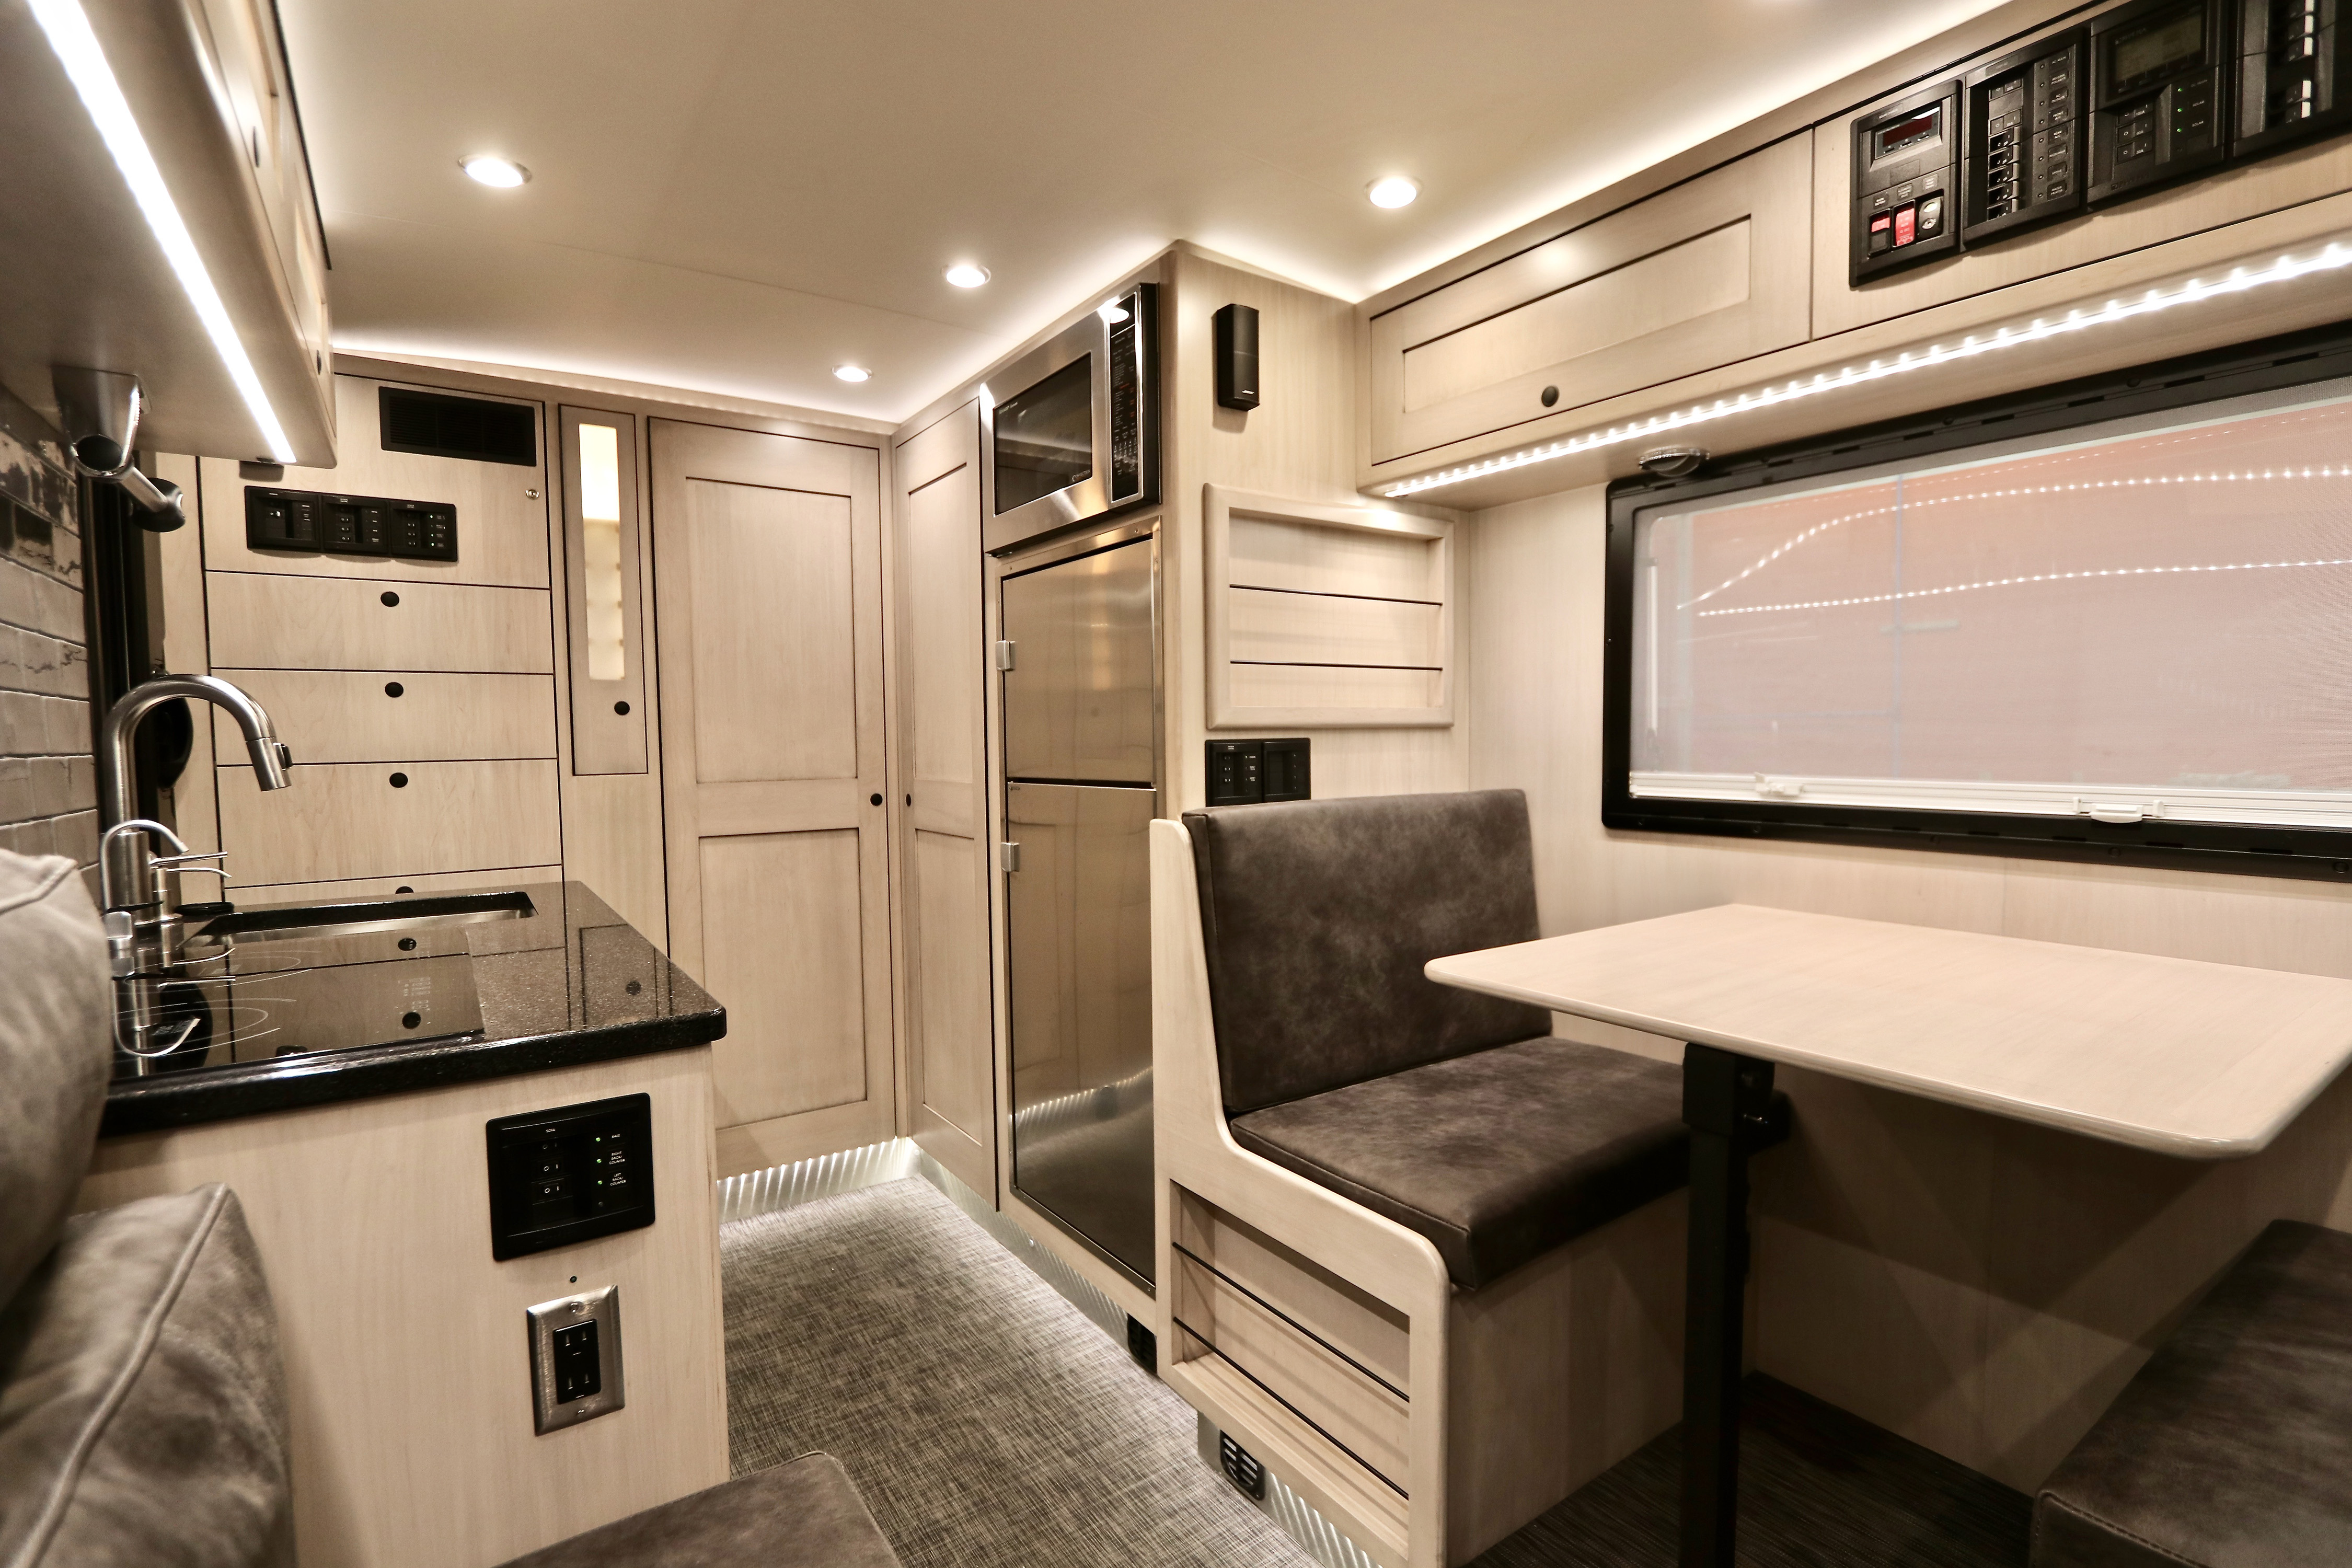 Go-anywhere luxury camper can stay off the grid for weeks